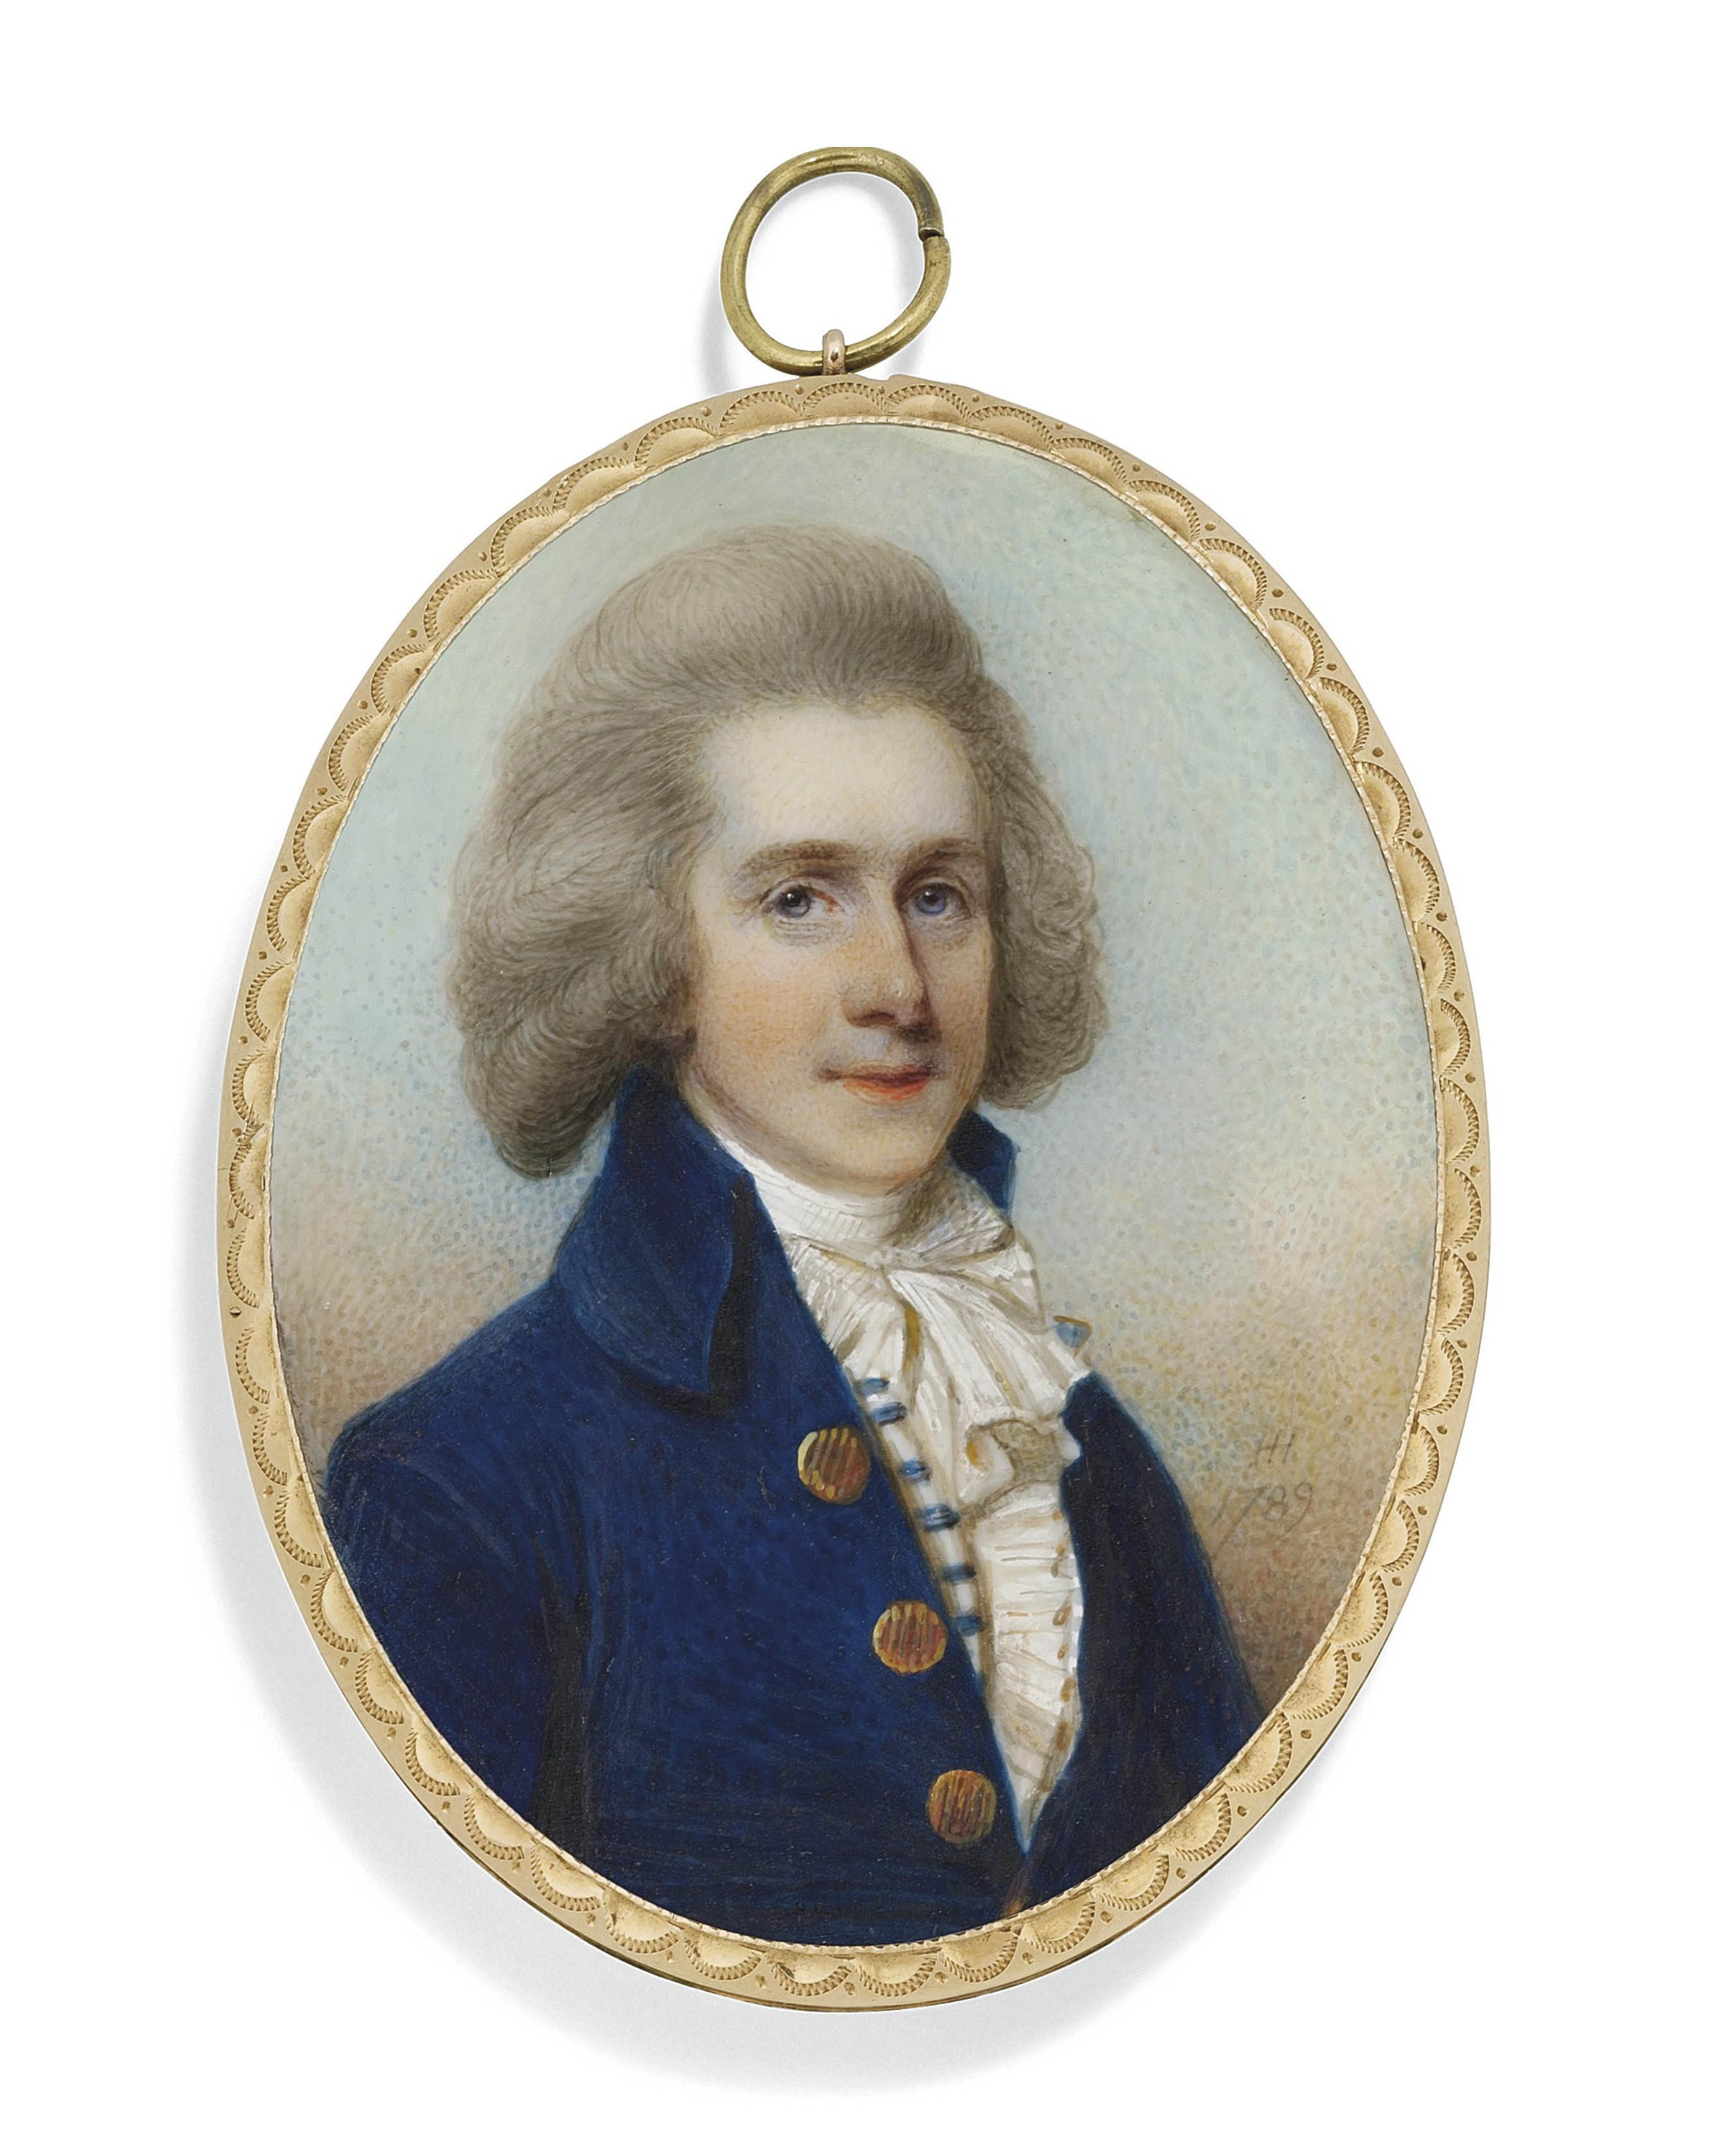 HORACE HONE, A.R.A. (ANGLO-IRISH, 1754/56 - 1825/27)